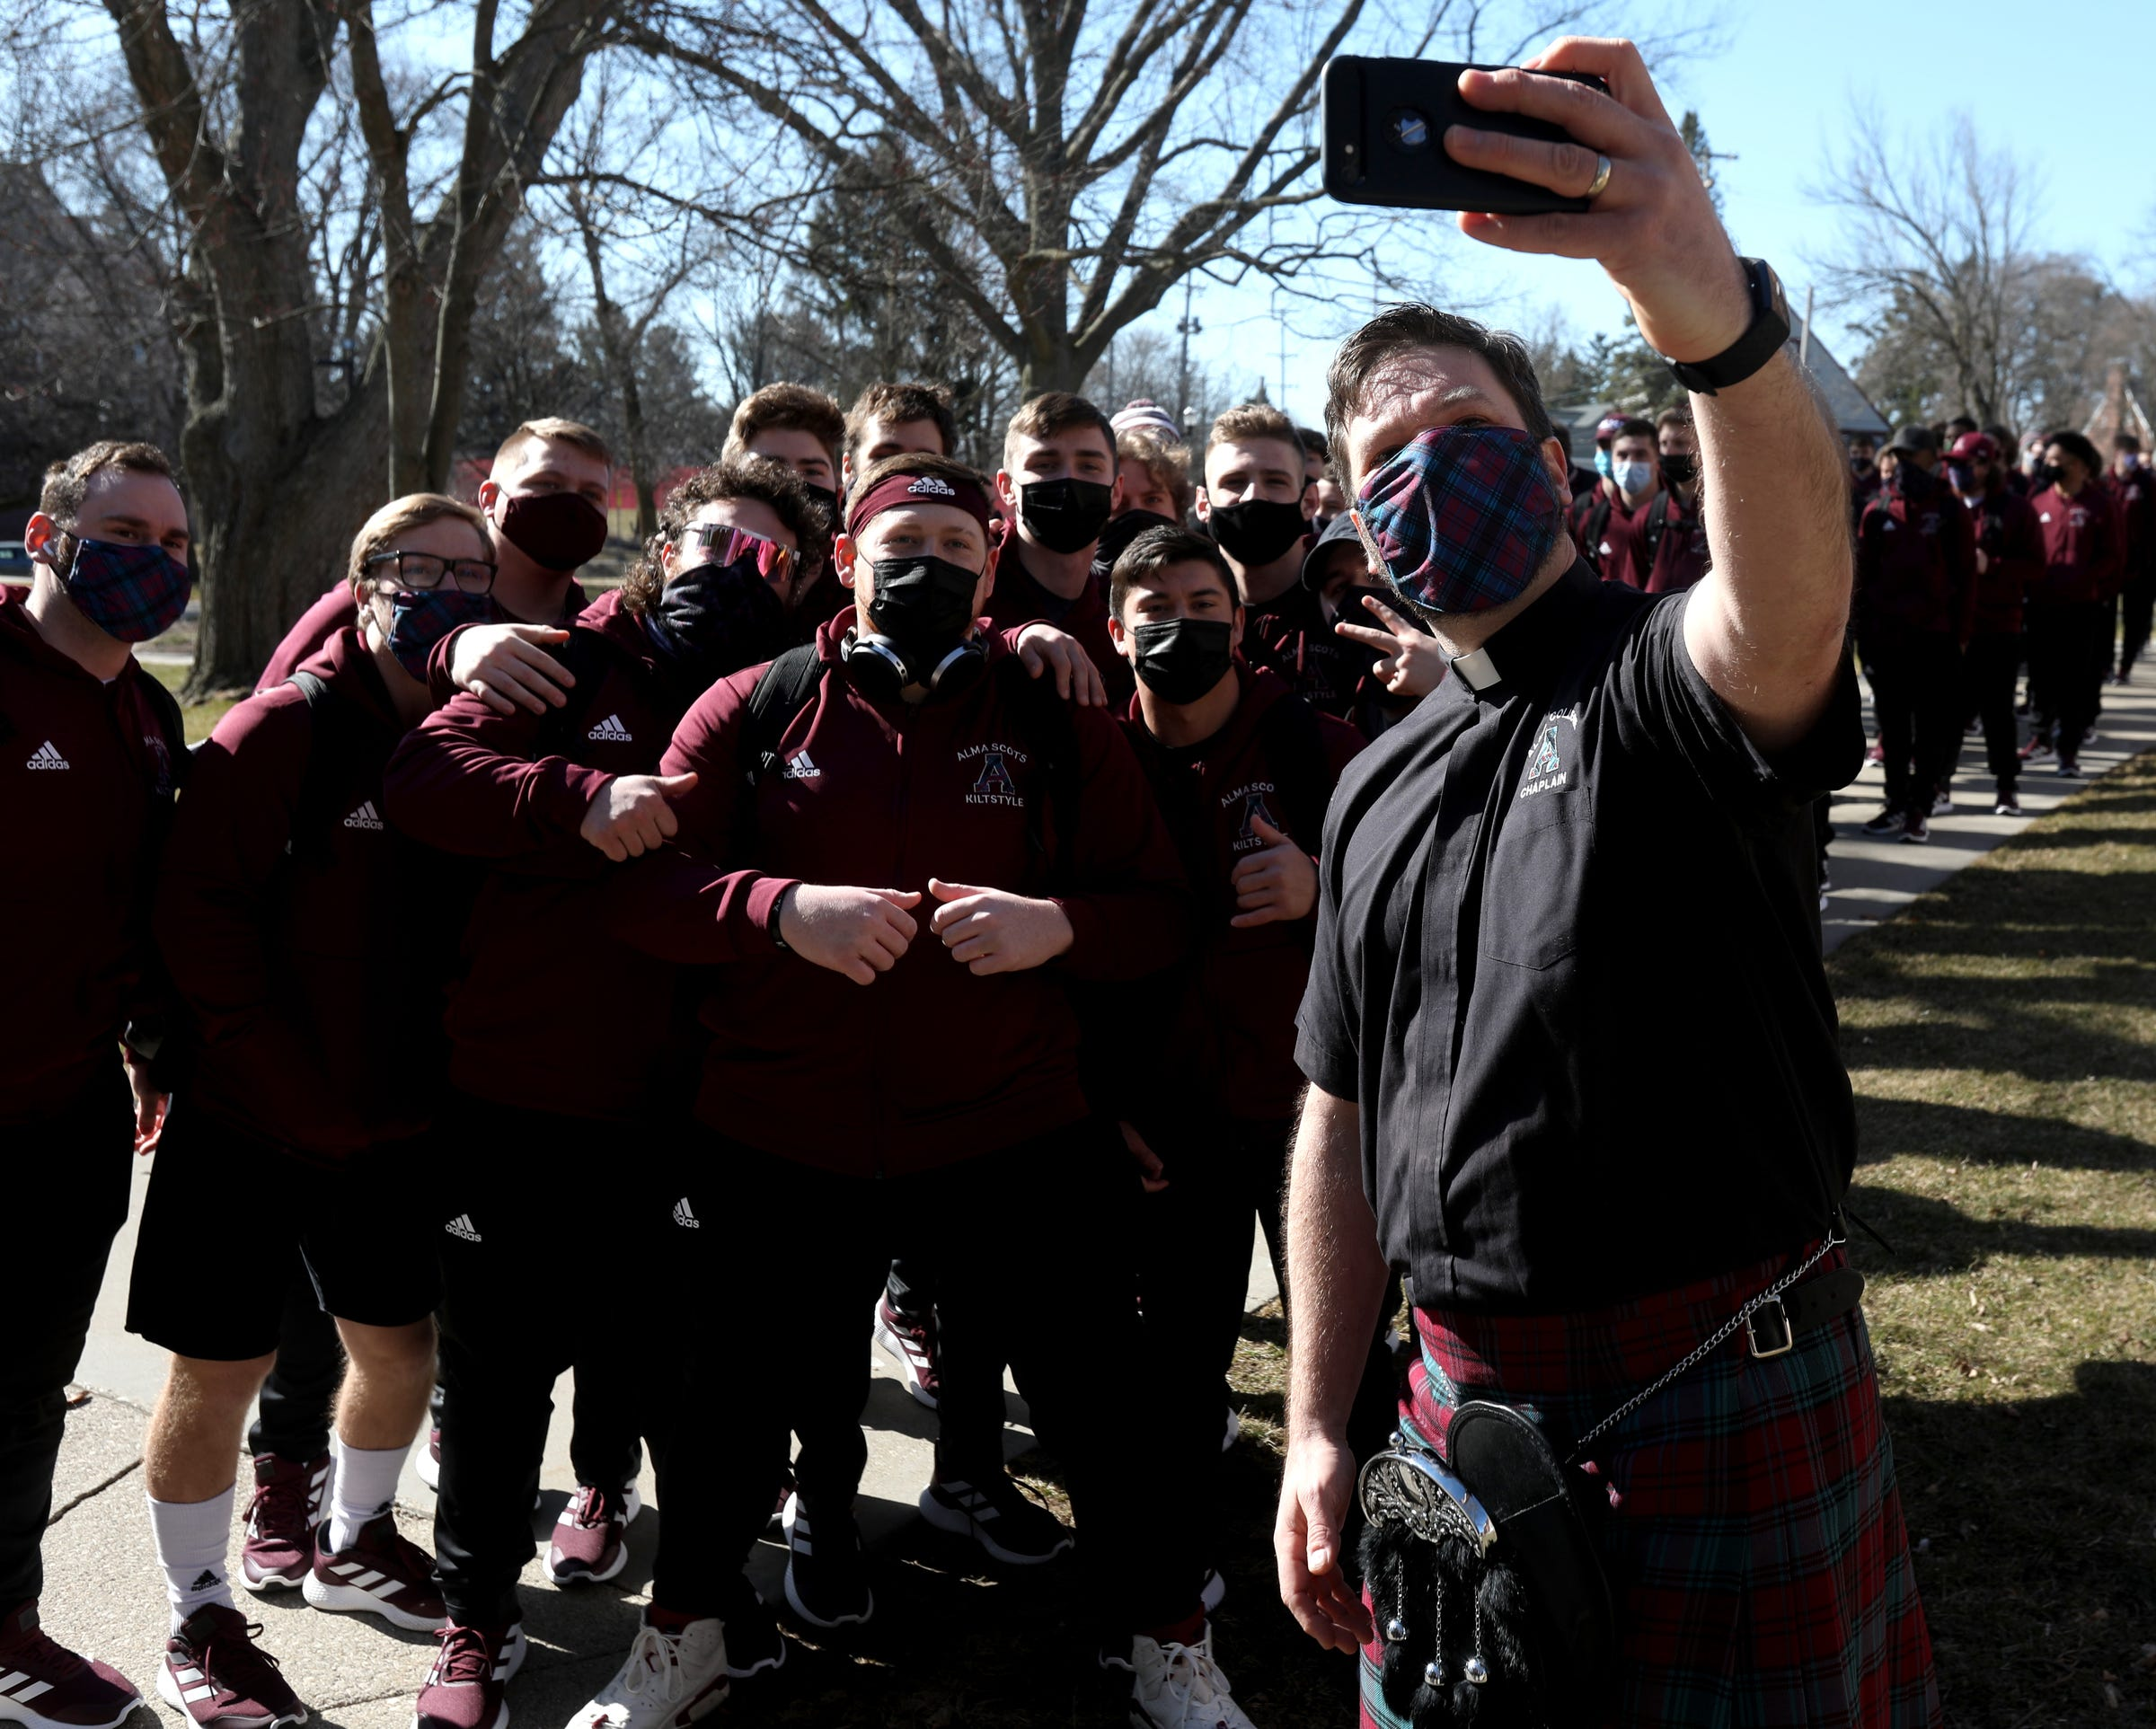 Andrew Pomerville, the Alma College chaplain, wanted a selfie with some members of the Alma football team before they marched off in line following bagpipes to the football field for their game against Adrian College in Alma, Michigan, on Saturday, March 20, 2021.